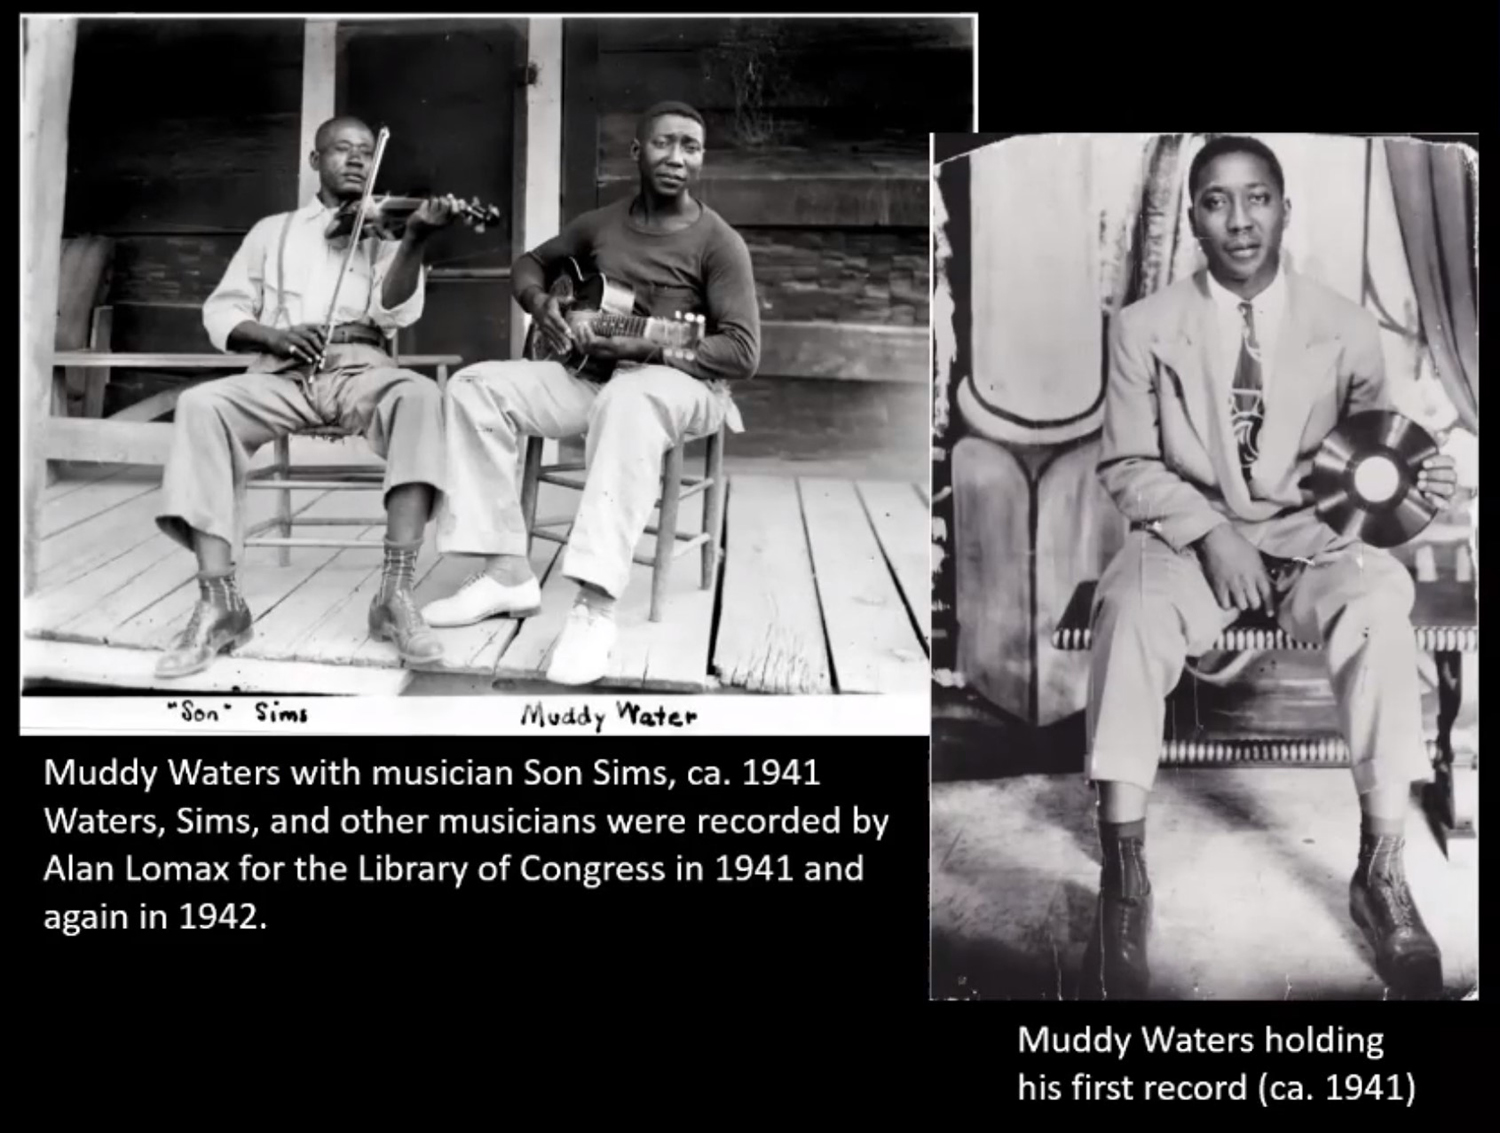 Historic Images of Muddy Waters. Images by CCL